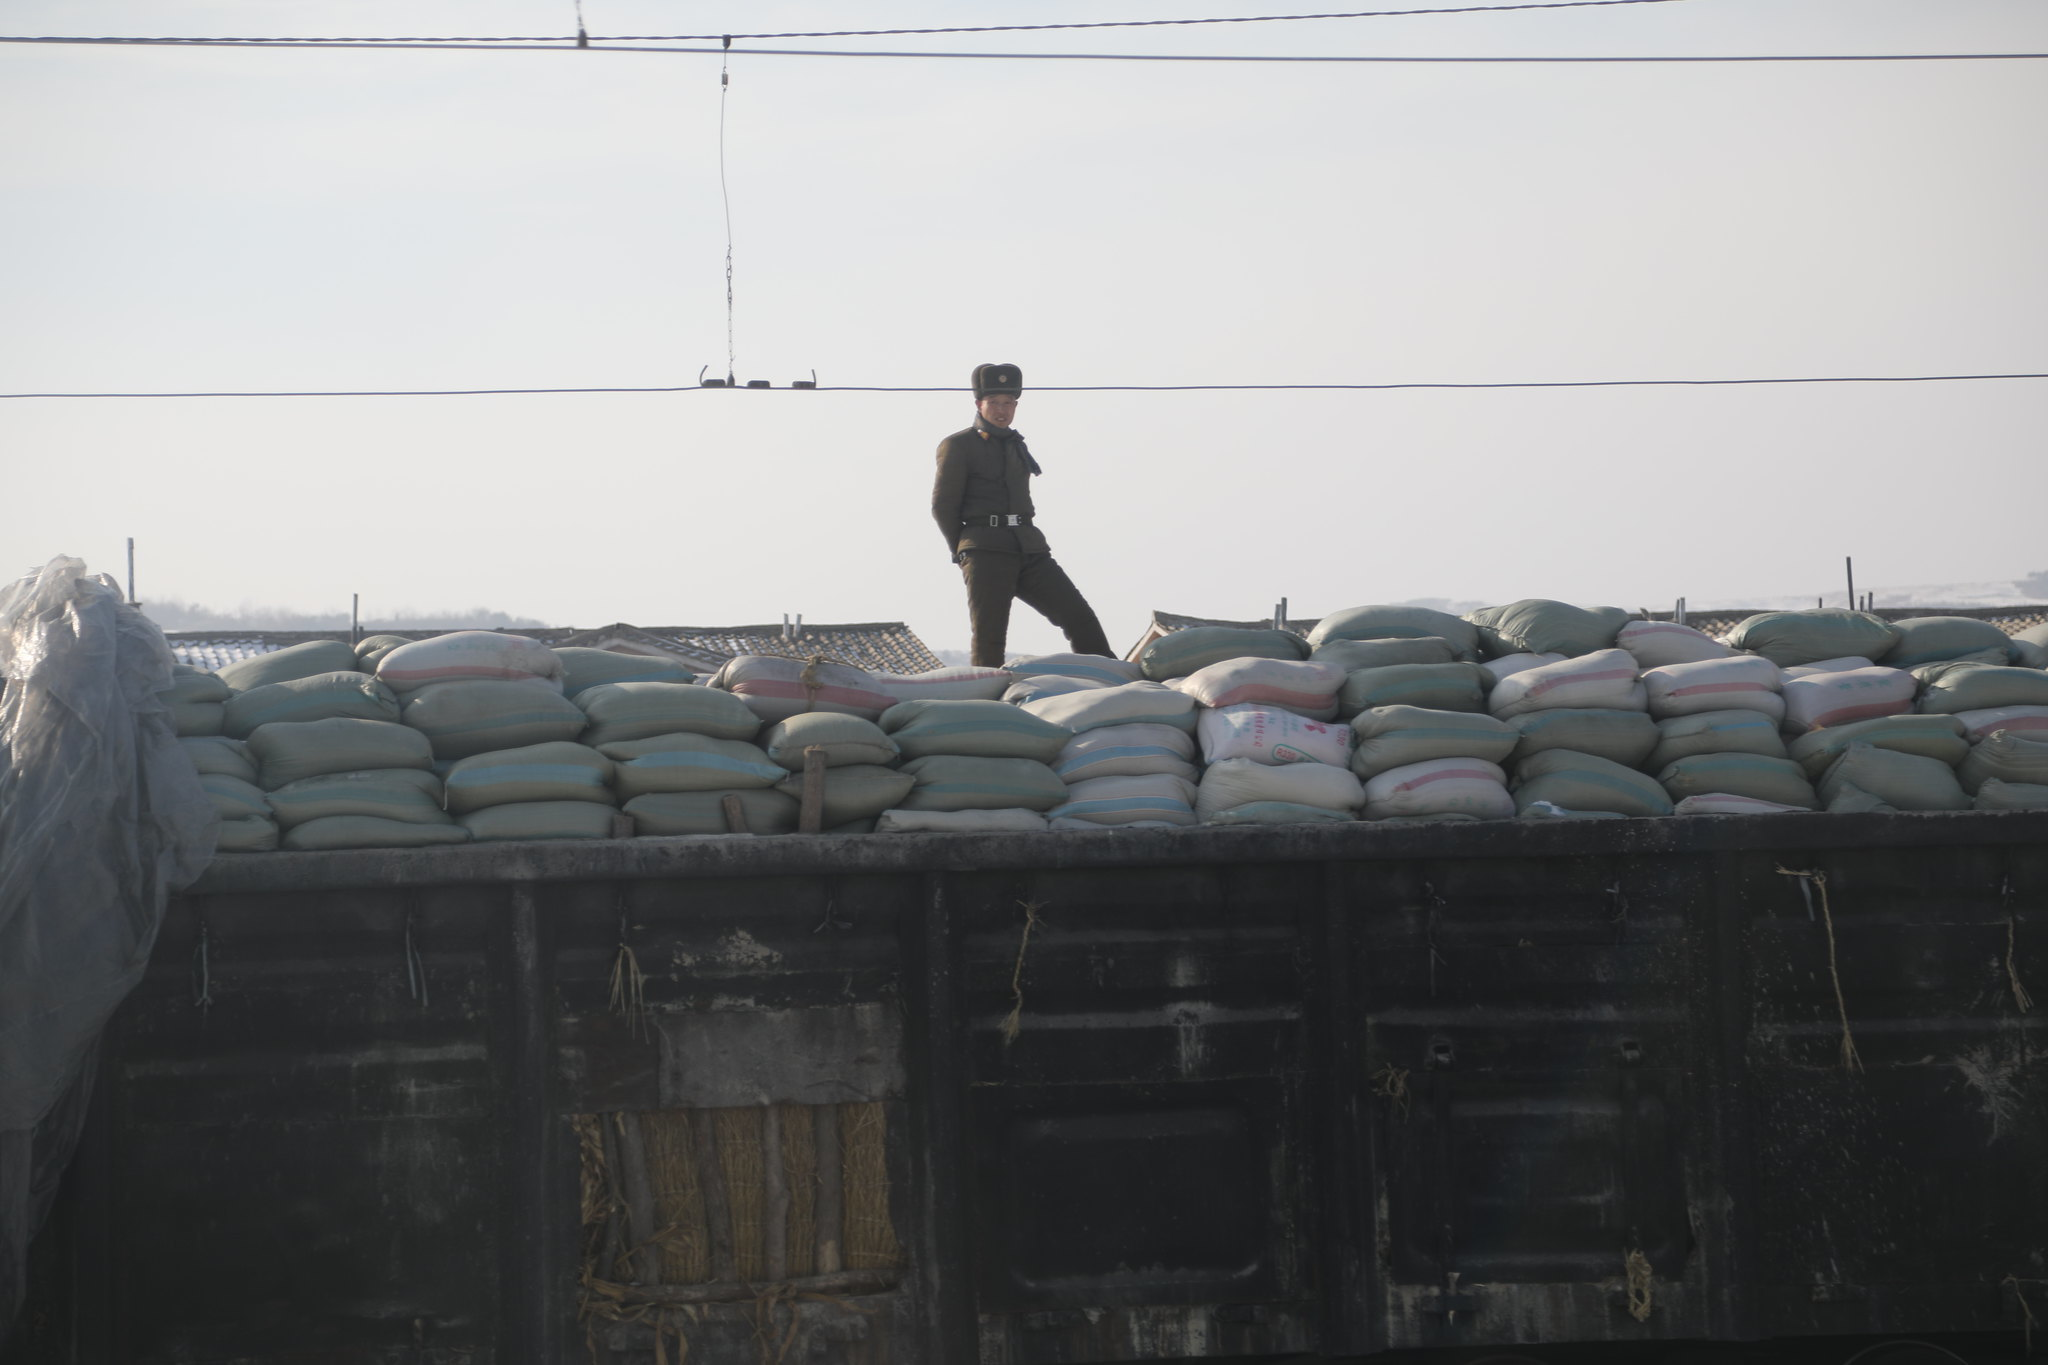 Chinese food exports to North Korea exceed pre-COVID levels, luxury foods absent